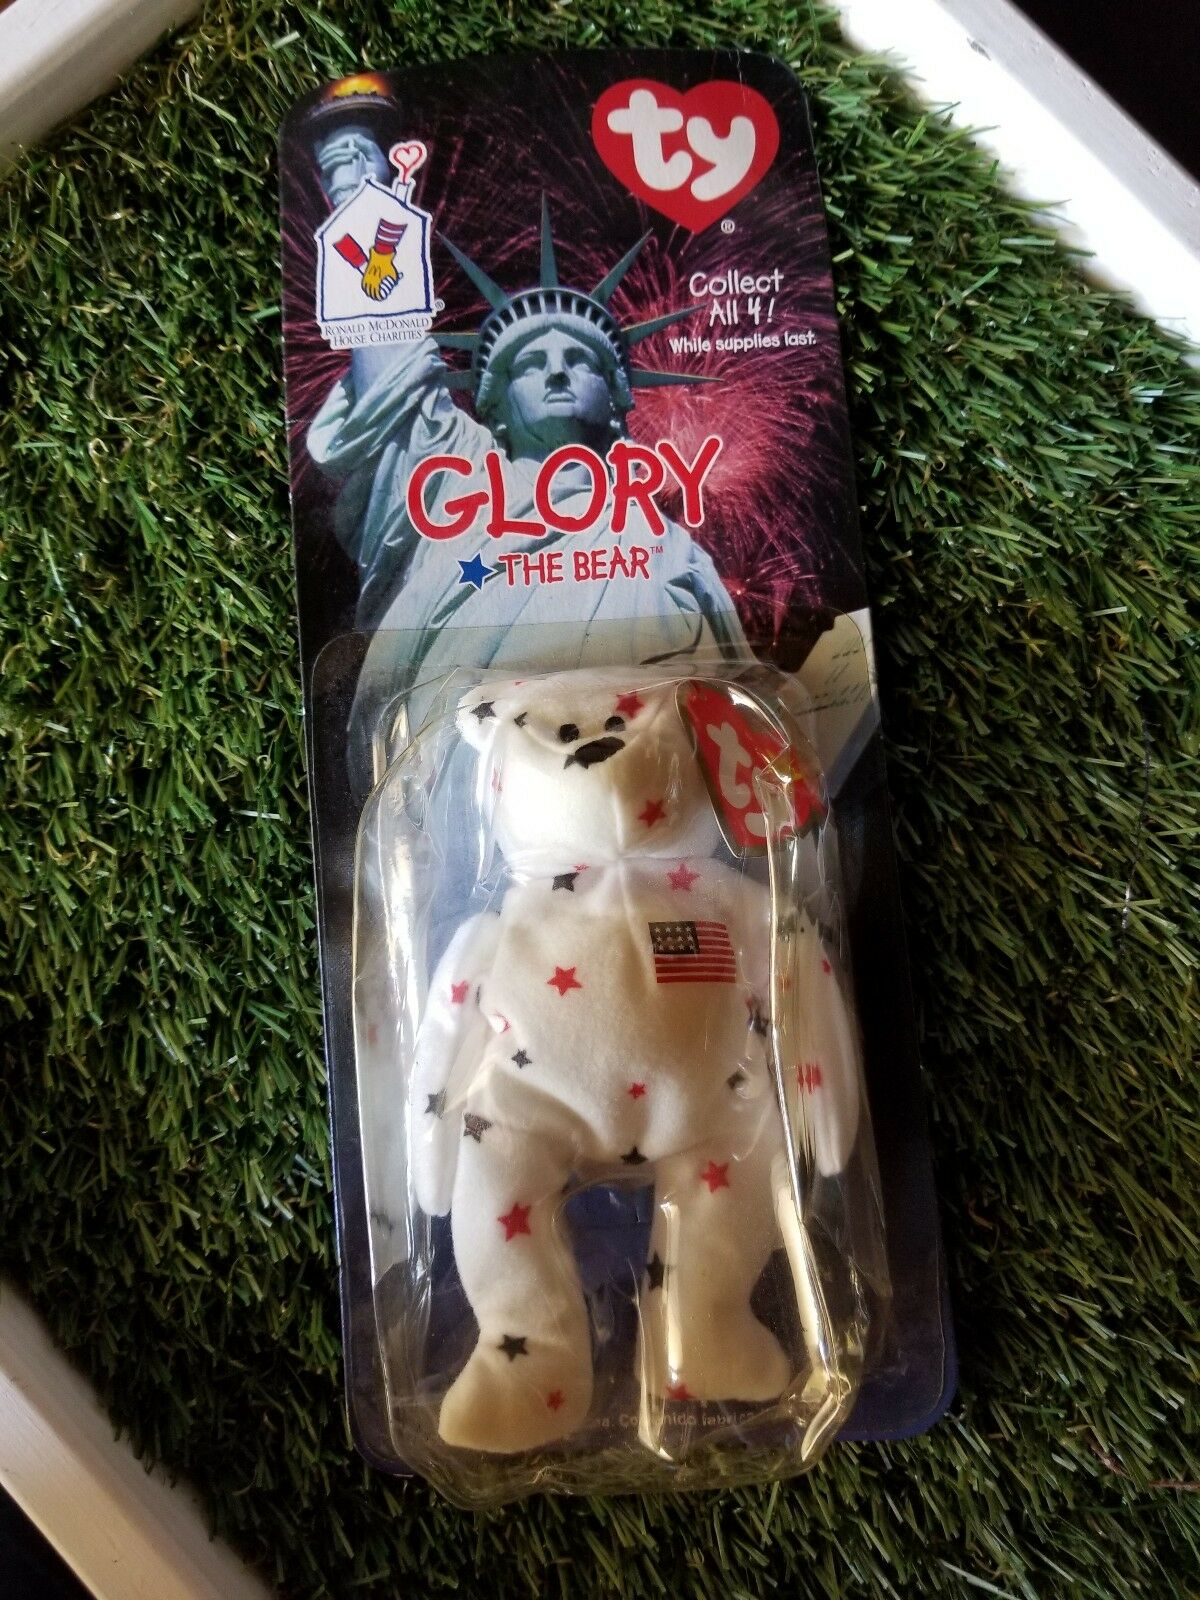 GLORY The Bear-1997 McDonalds Ty Beanie Baby with rare errors 1993, OakBrook